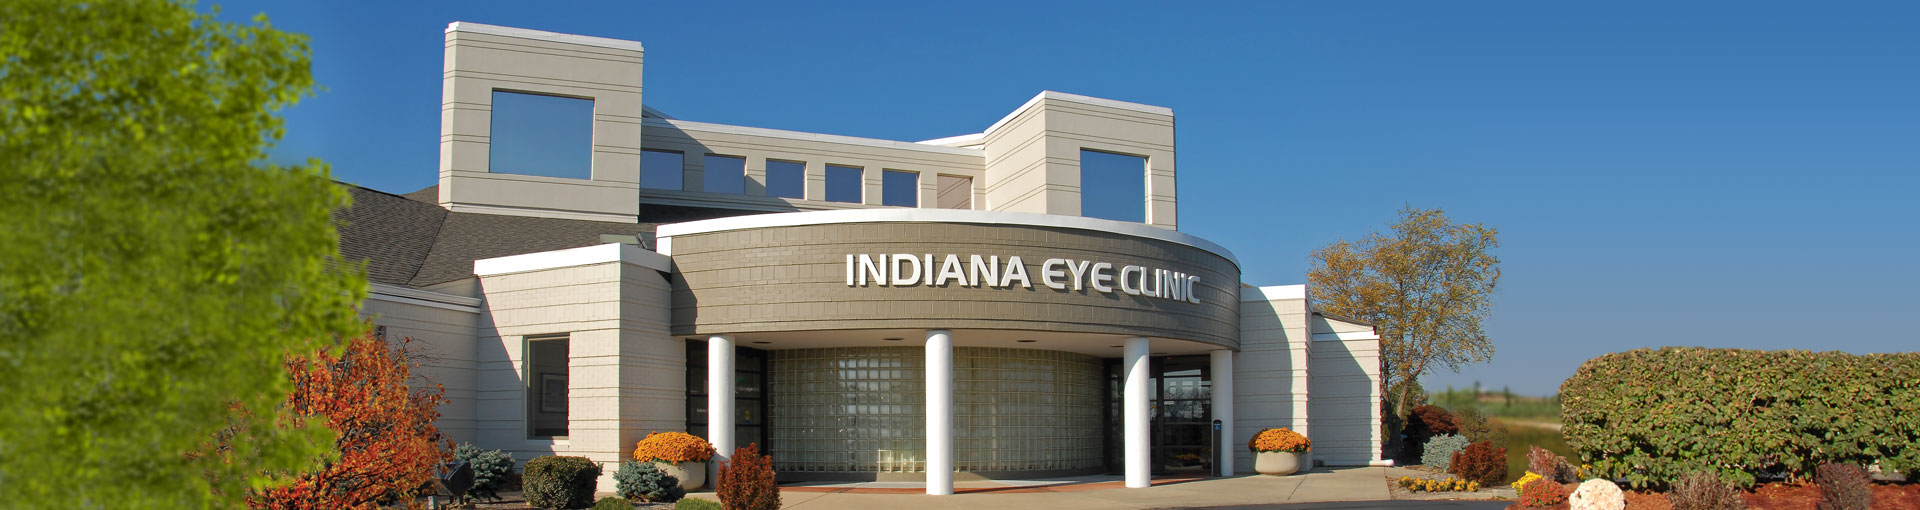 Indiana Eye Clinic Building